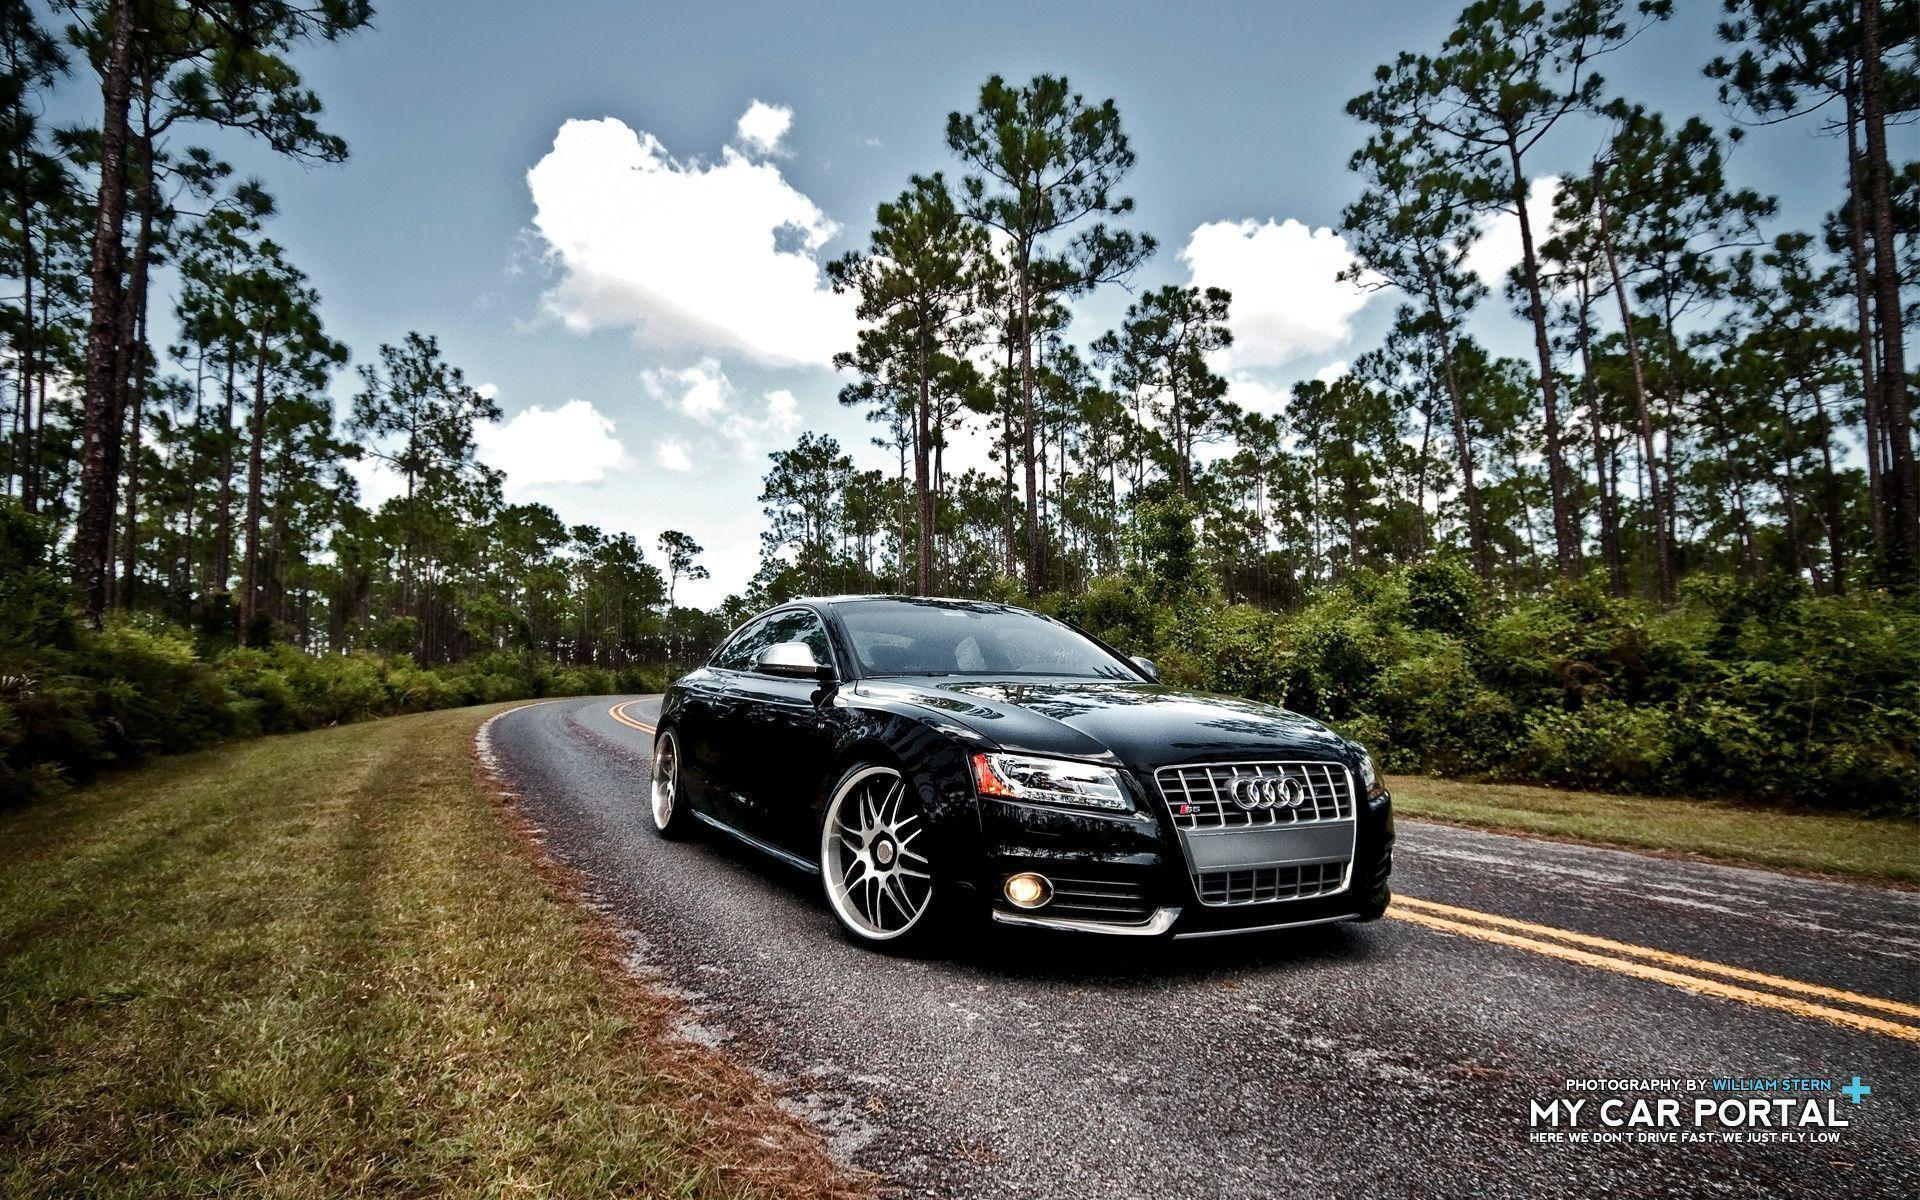 Audi s5 wallpapers wallpaper cave - Car wallpapers for galaxy s5 ...